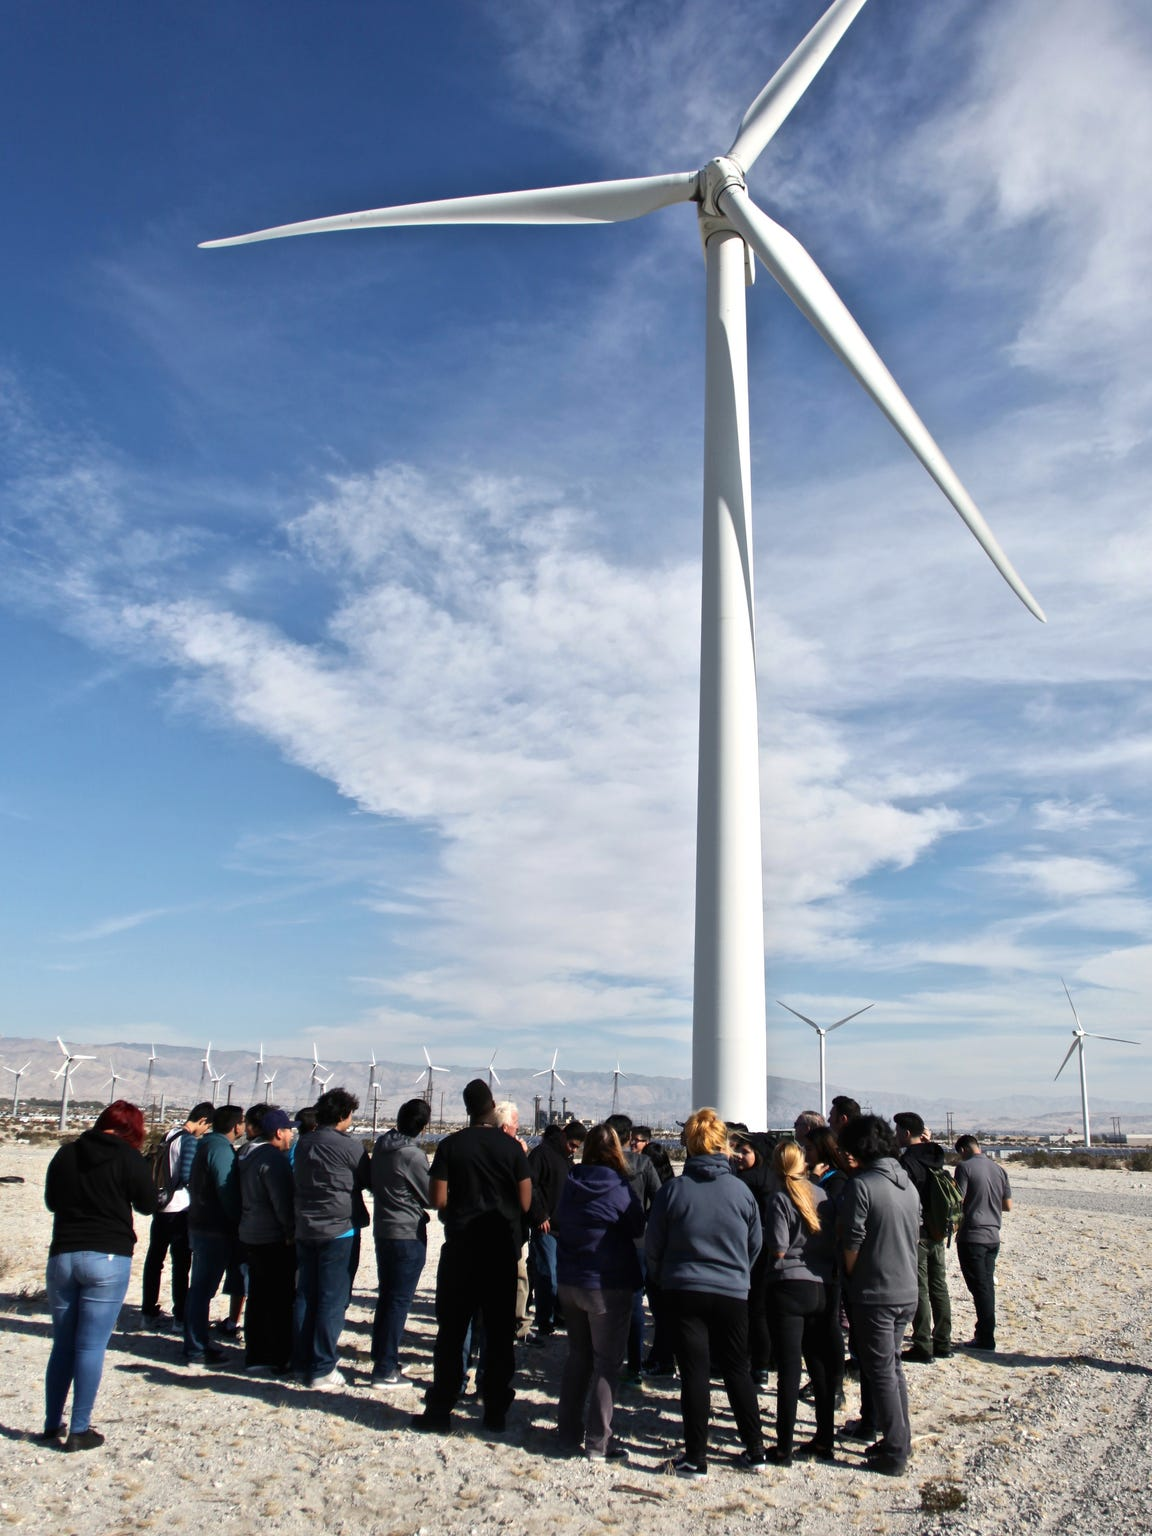 Desert Hot Springs High School students visited Palm Springs Windmill Tours on Thursday, Jan. 14, 2016. They took a tour around a wind farm and learned about renewable energy.